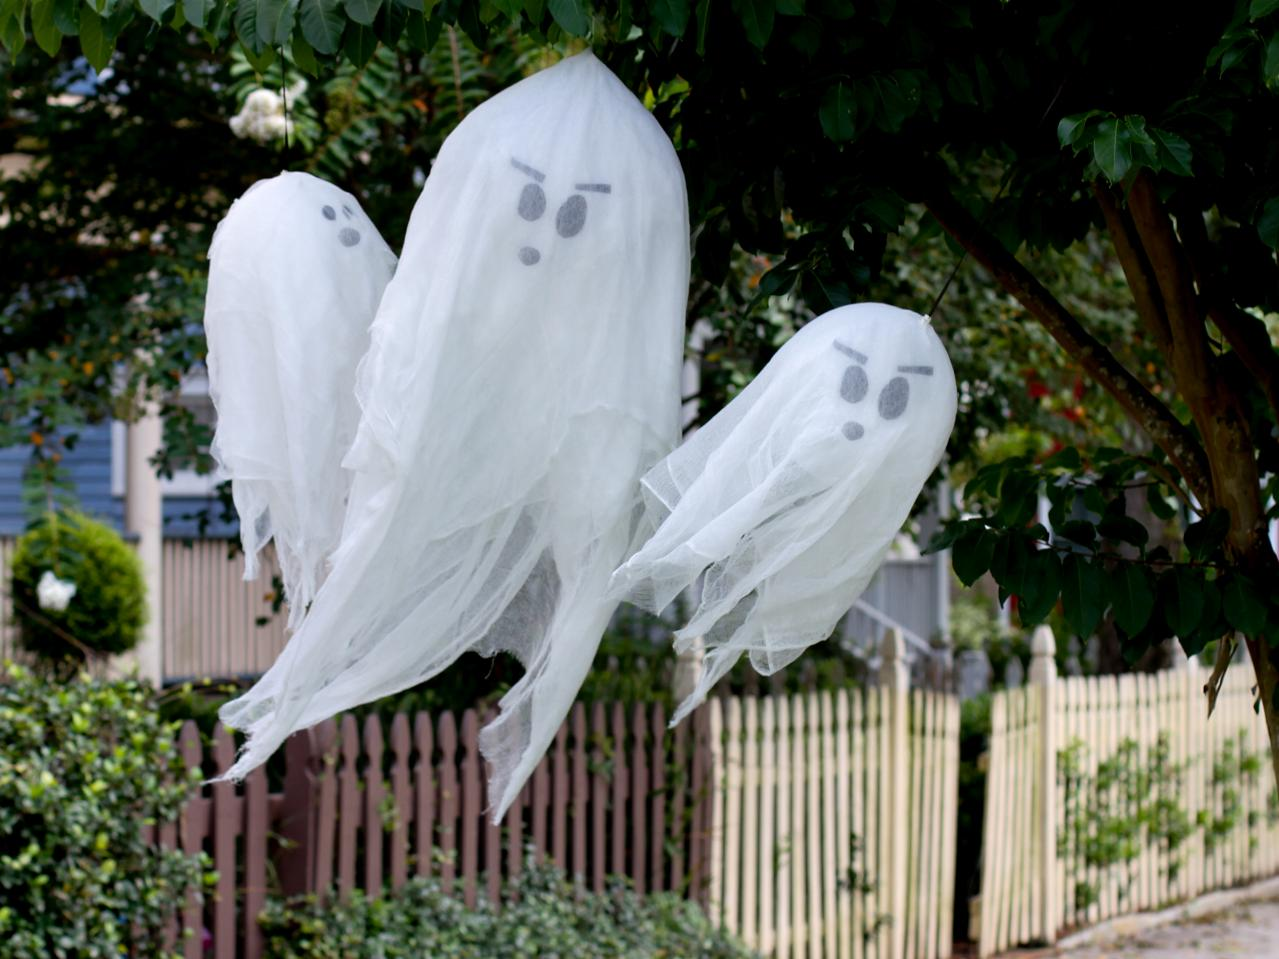 Cute floating DIY ghosts made out of balloons and cheesecloth.